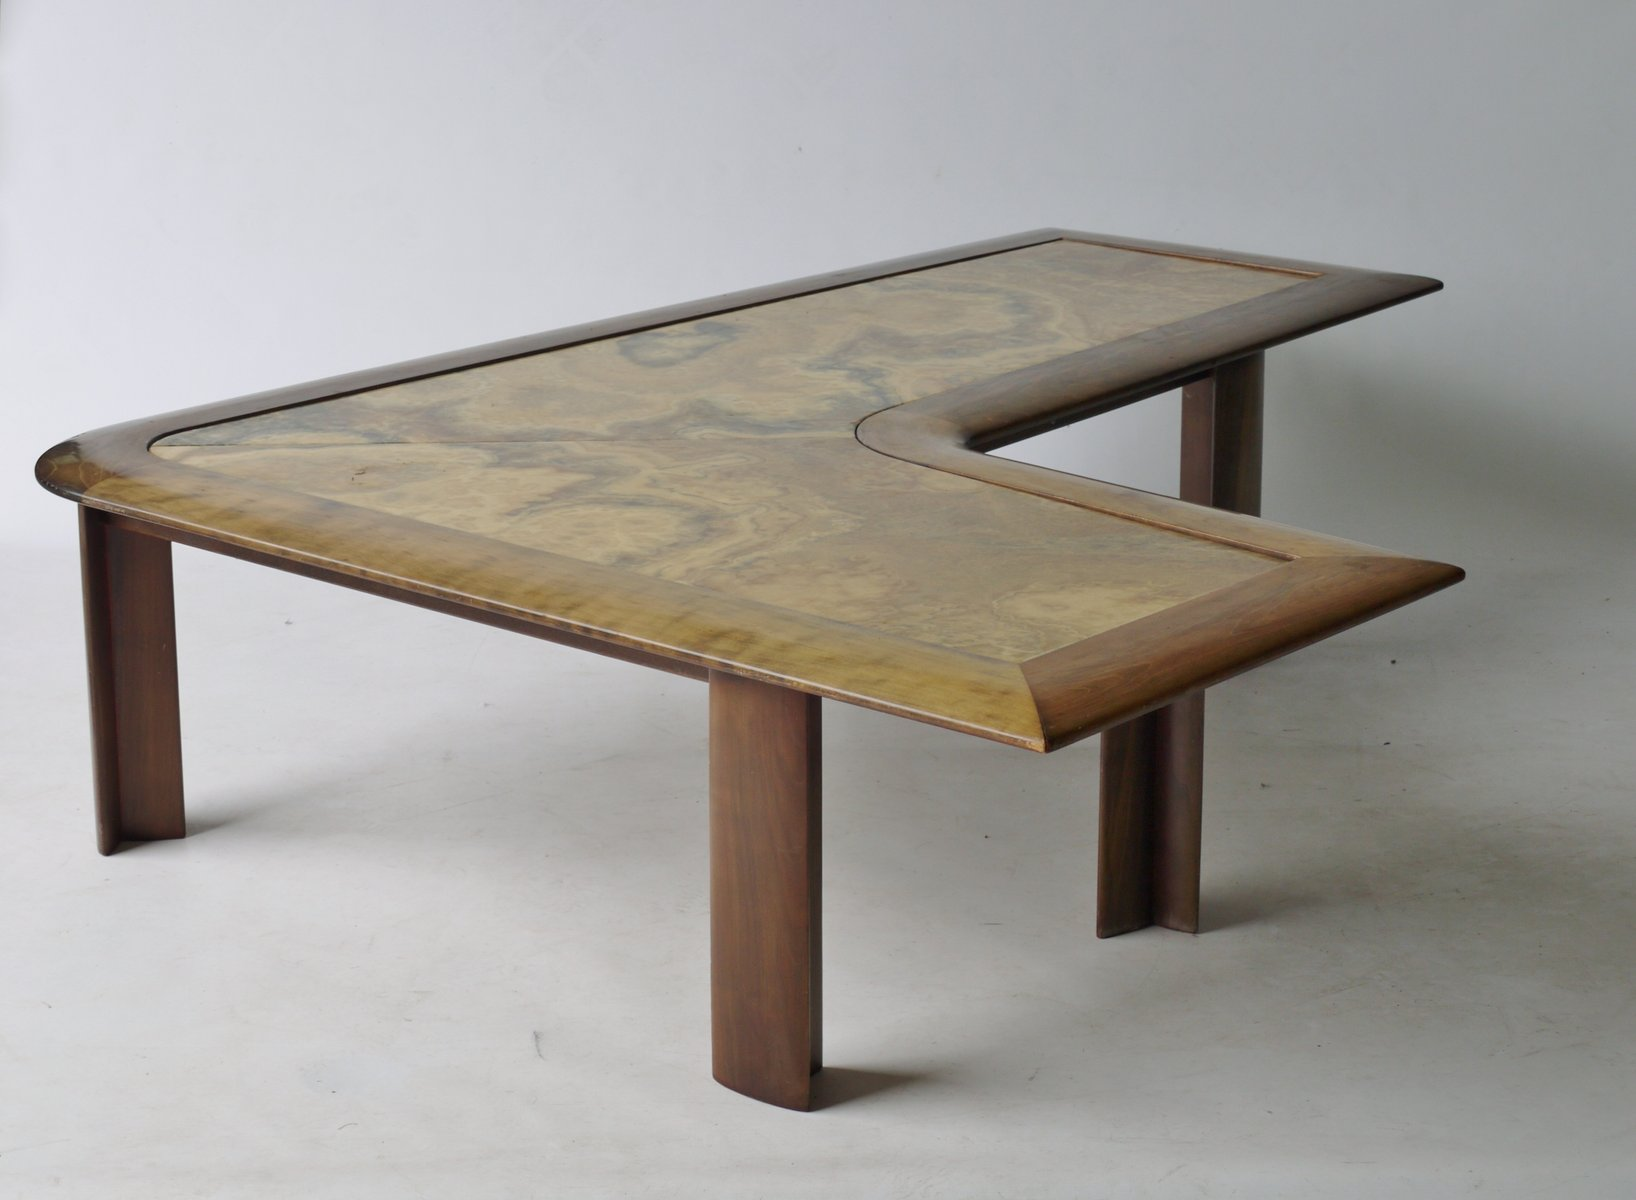 L Shaped Marble Coffee Table 1970s for sale at Pamono